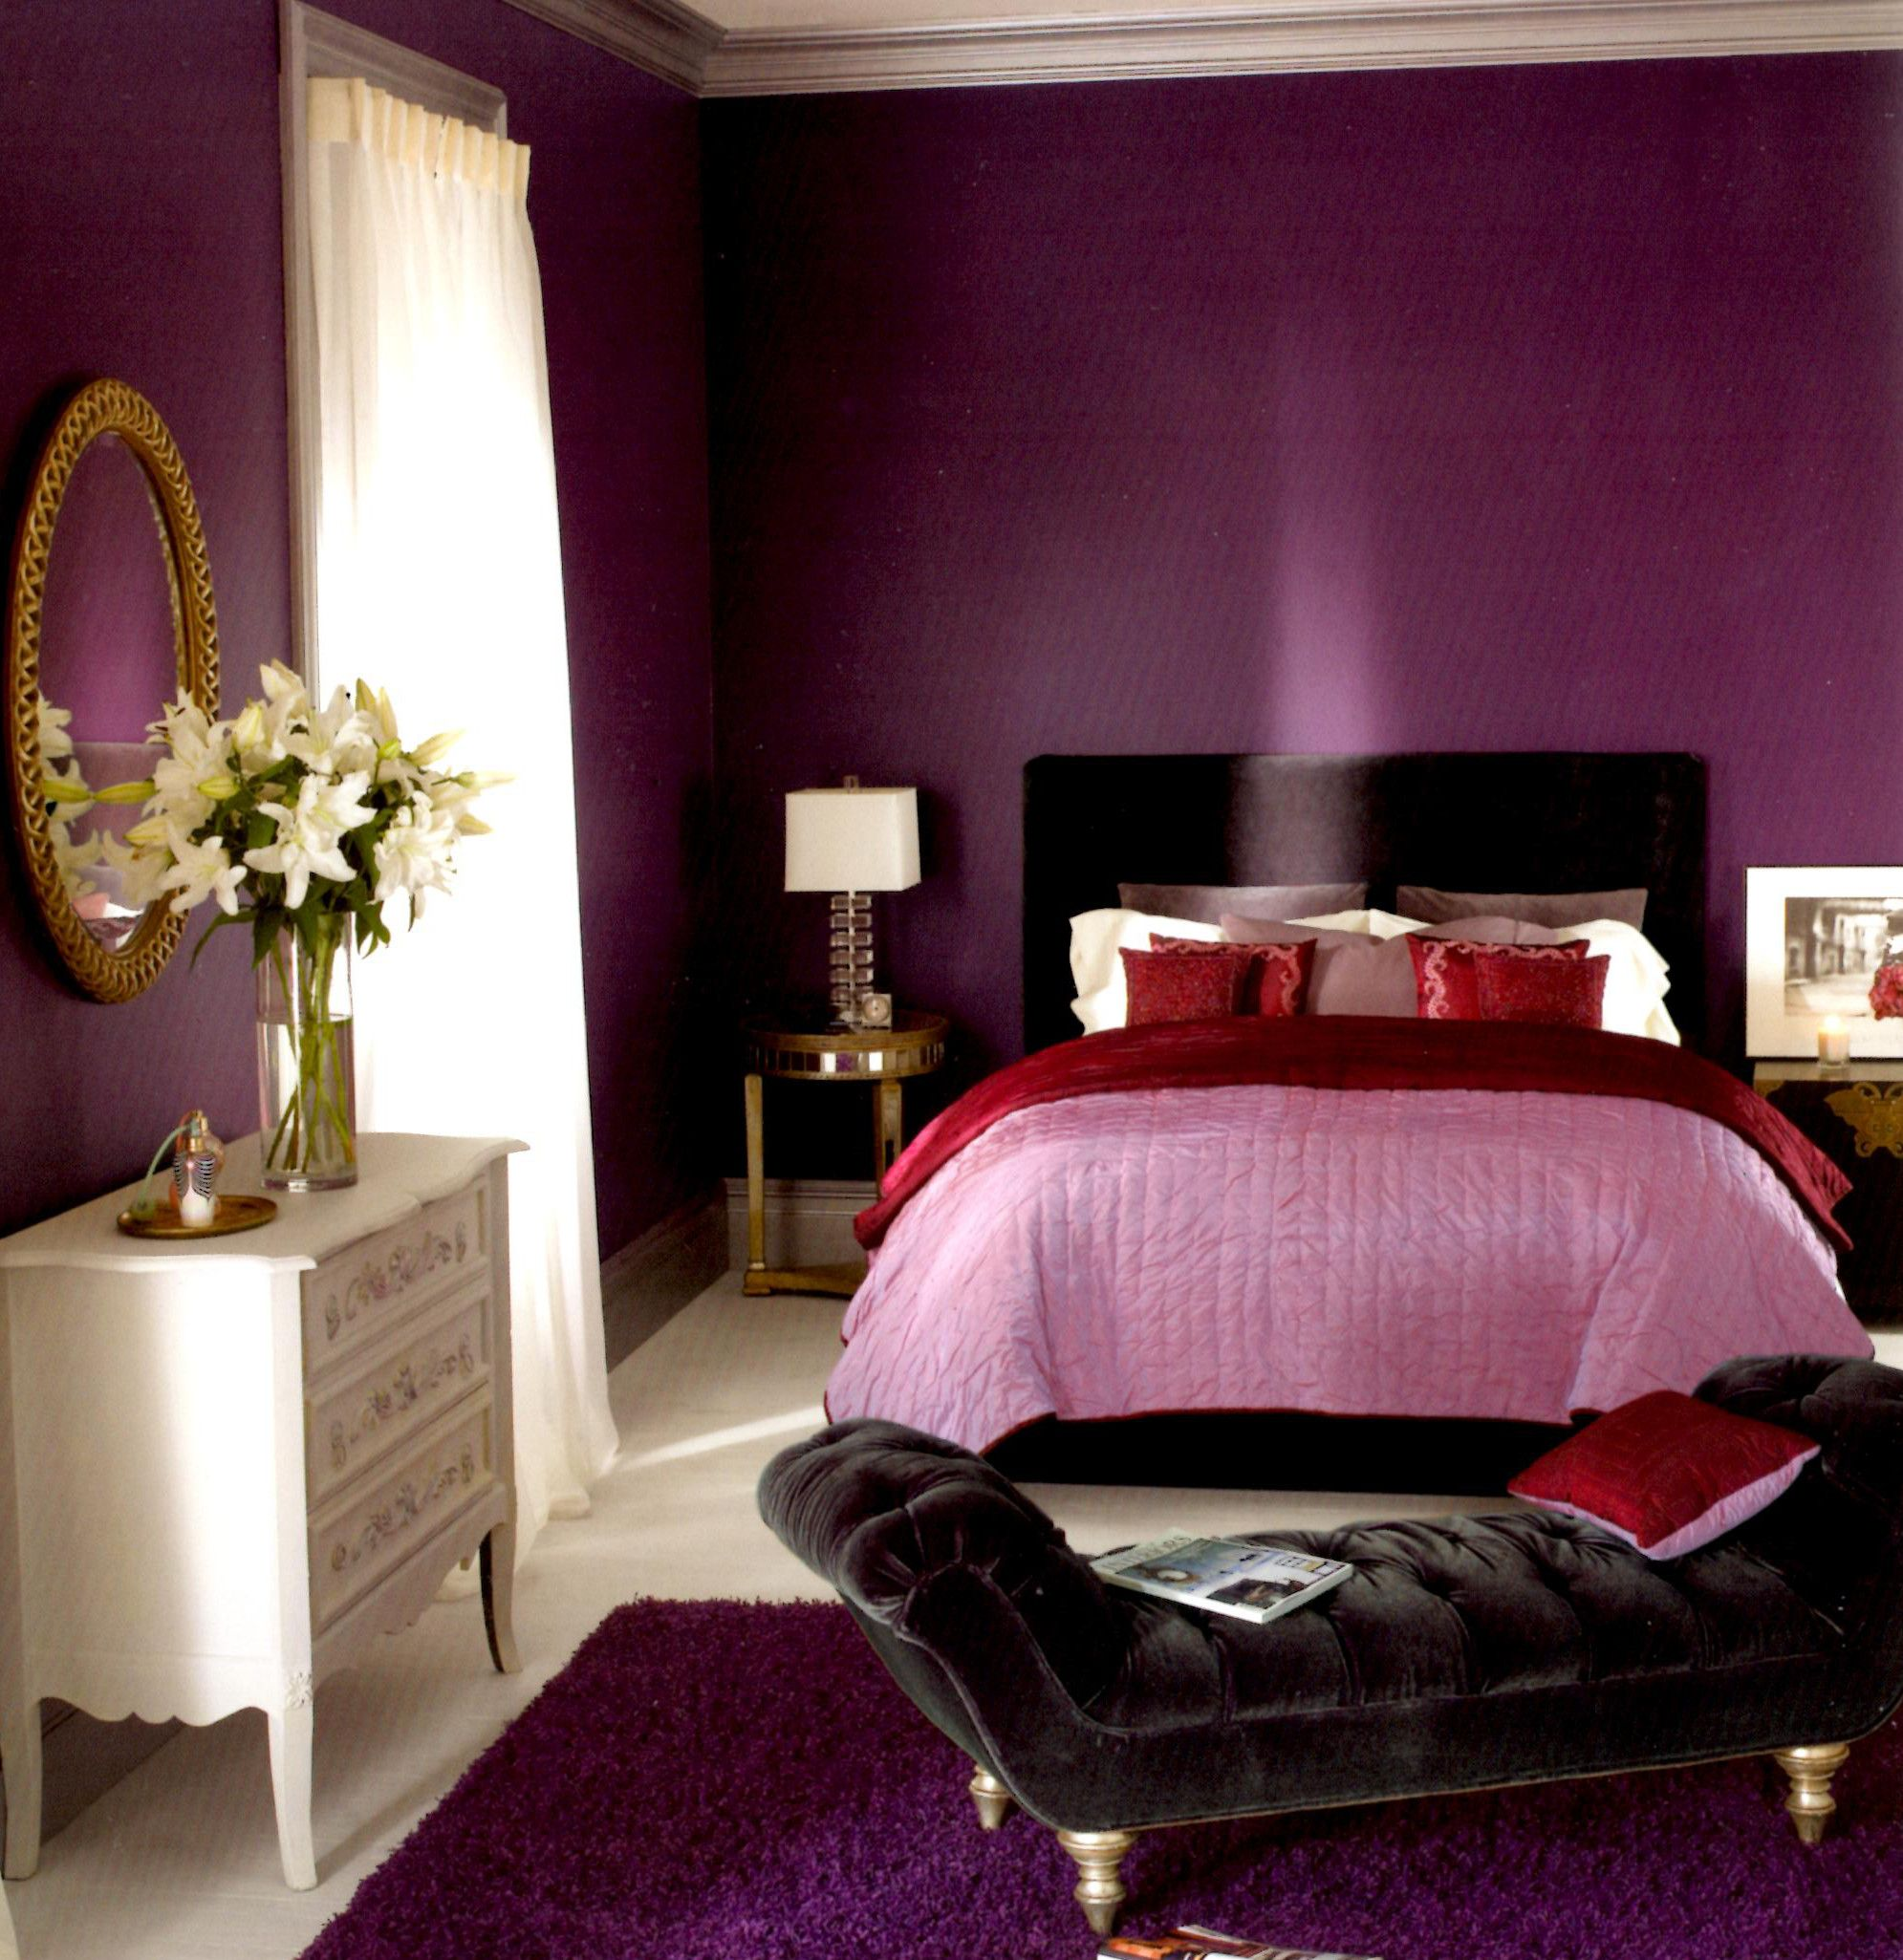 Lose The Pink Lilac Comforter And You Ve Got My Favorite Bedroom Color Palette